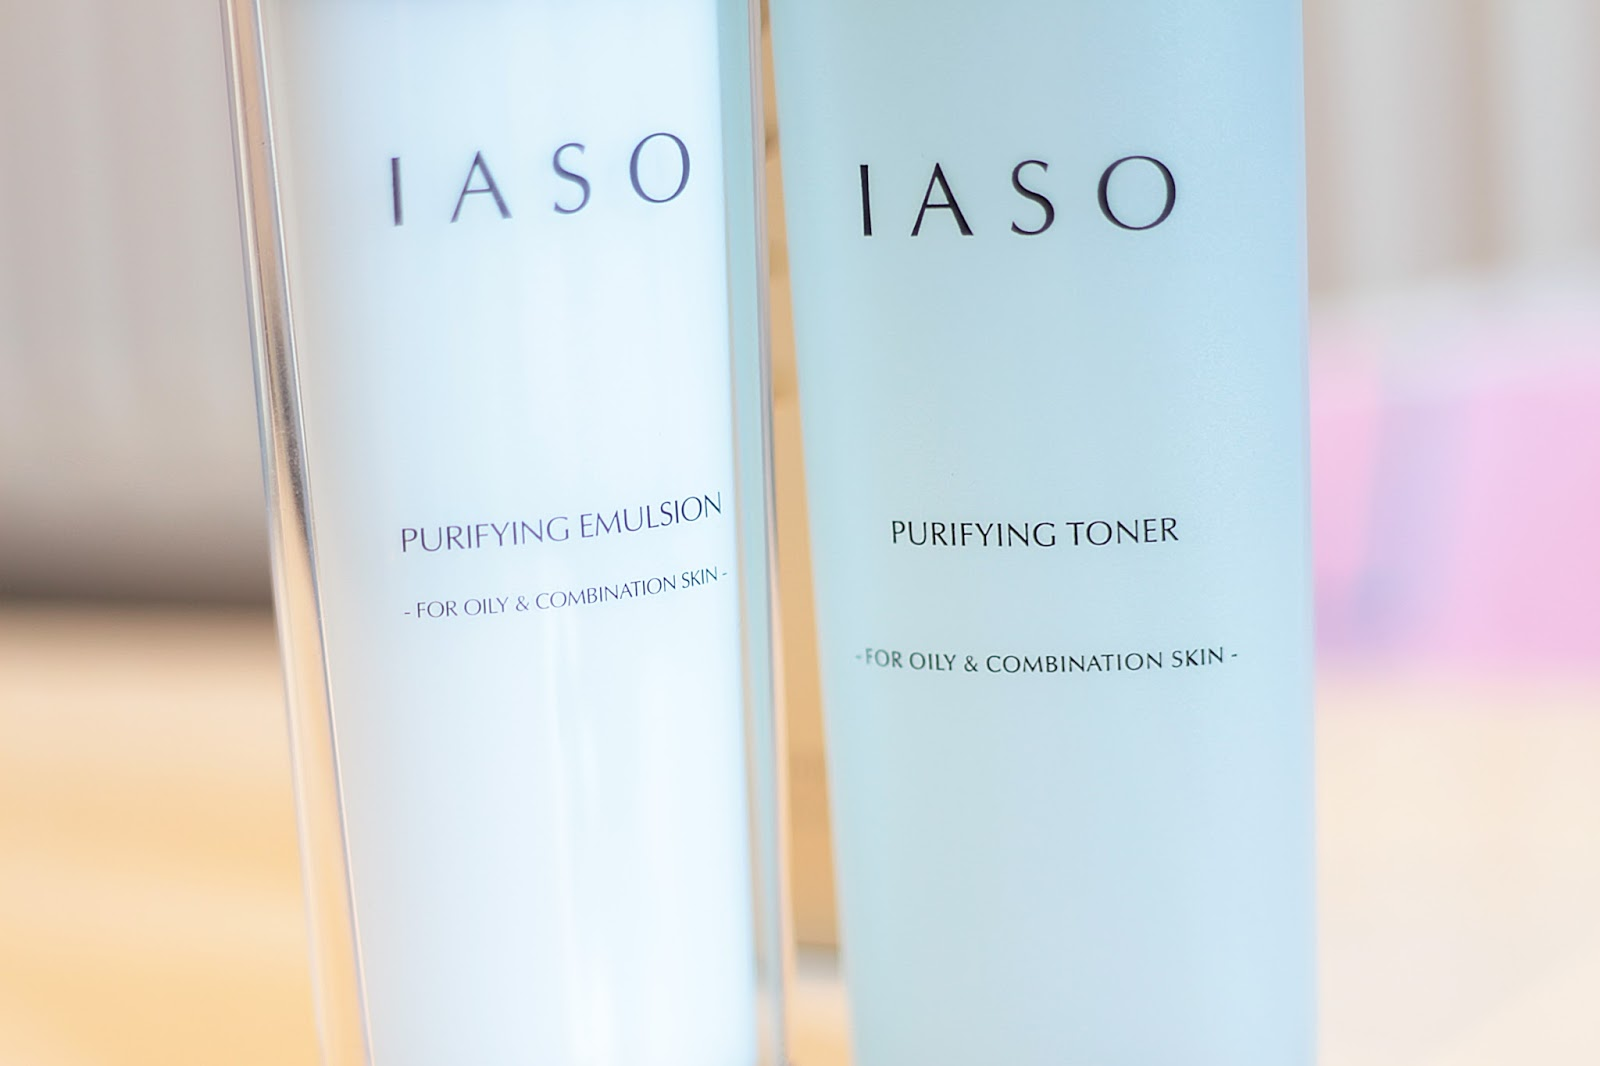 IASO korean skincare brand - review of their purifying toner and purifying emulsion